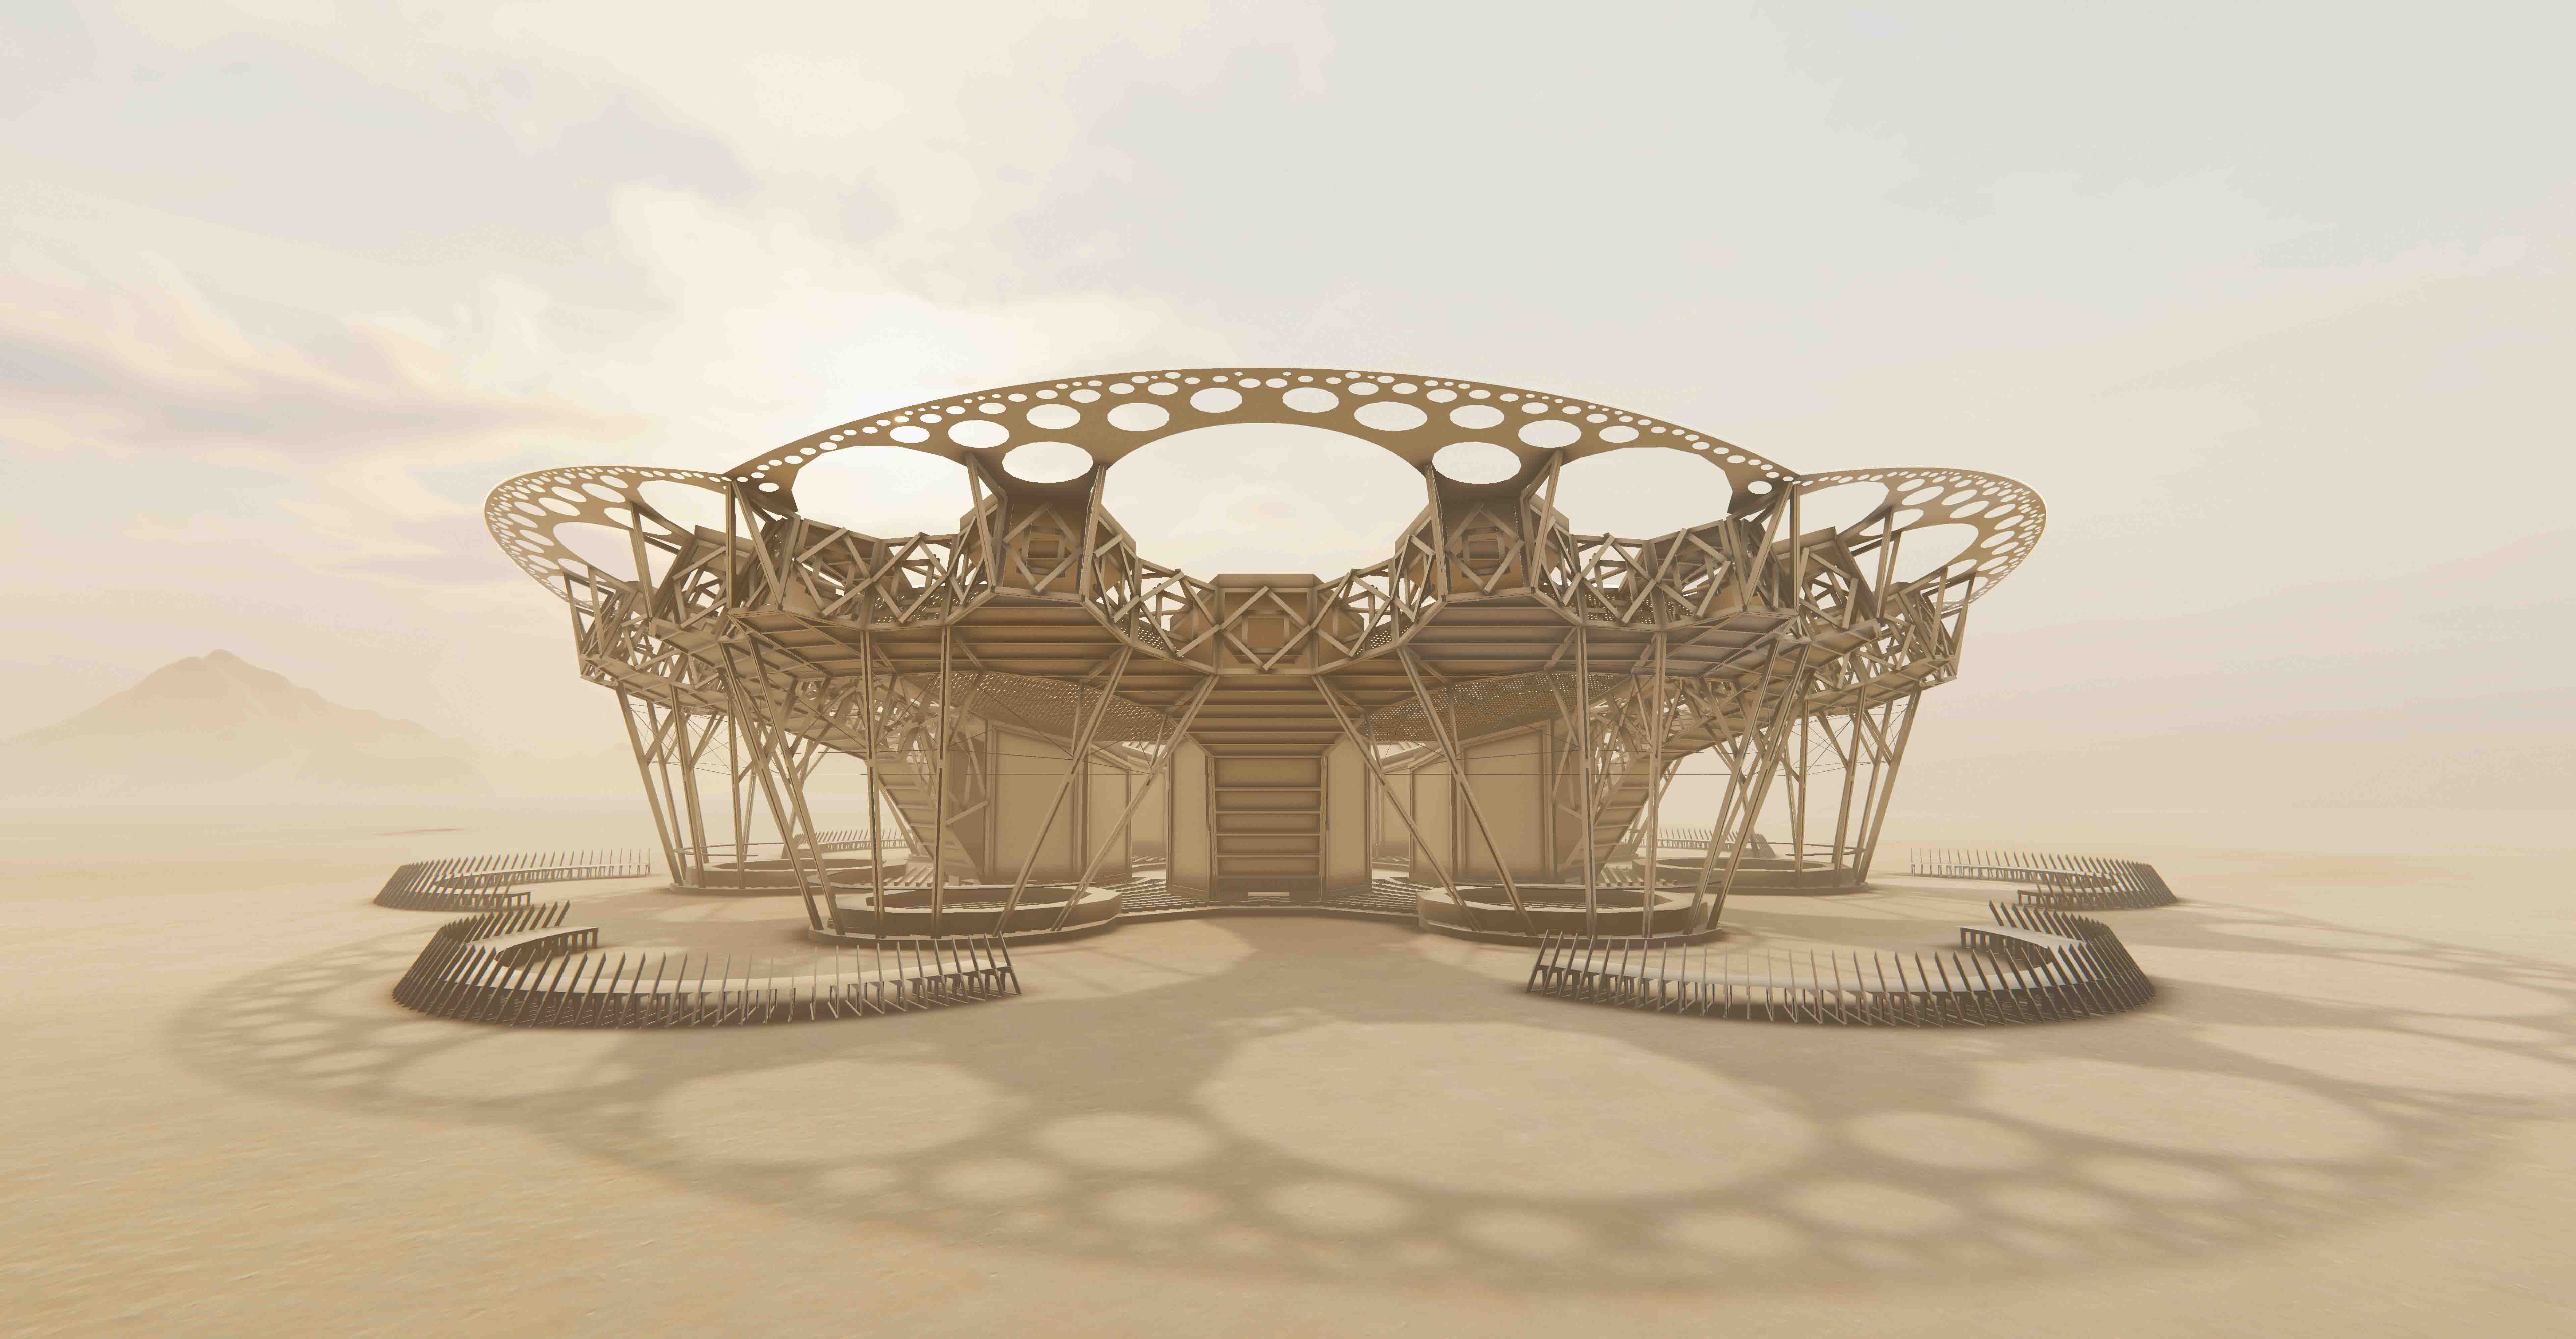 Catharsis by Architect Arthur Mamou-Mani in AltspaceVR